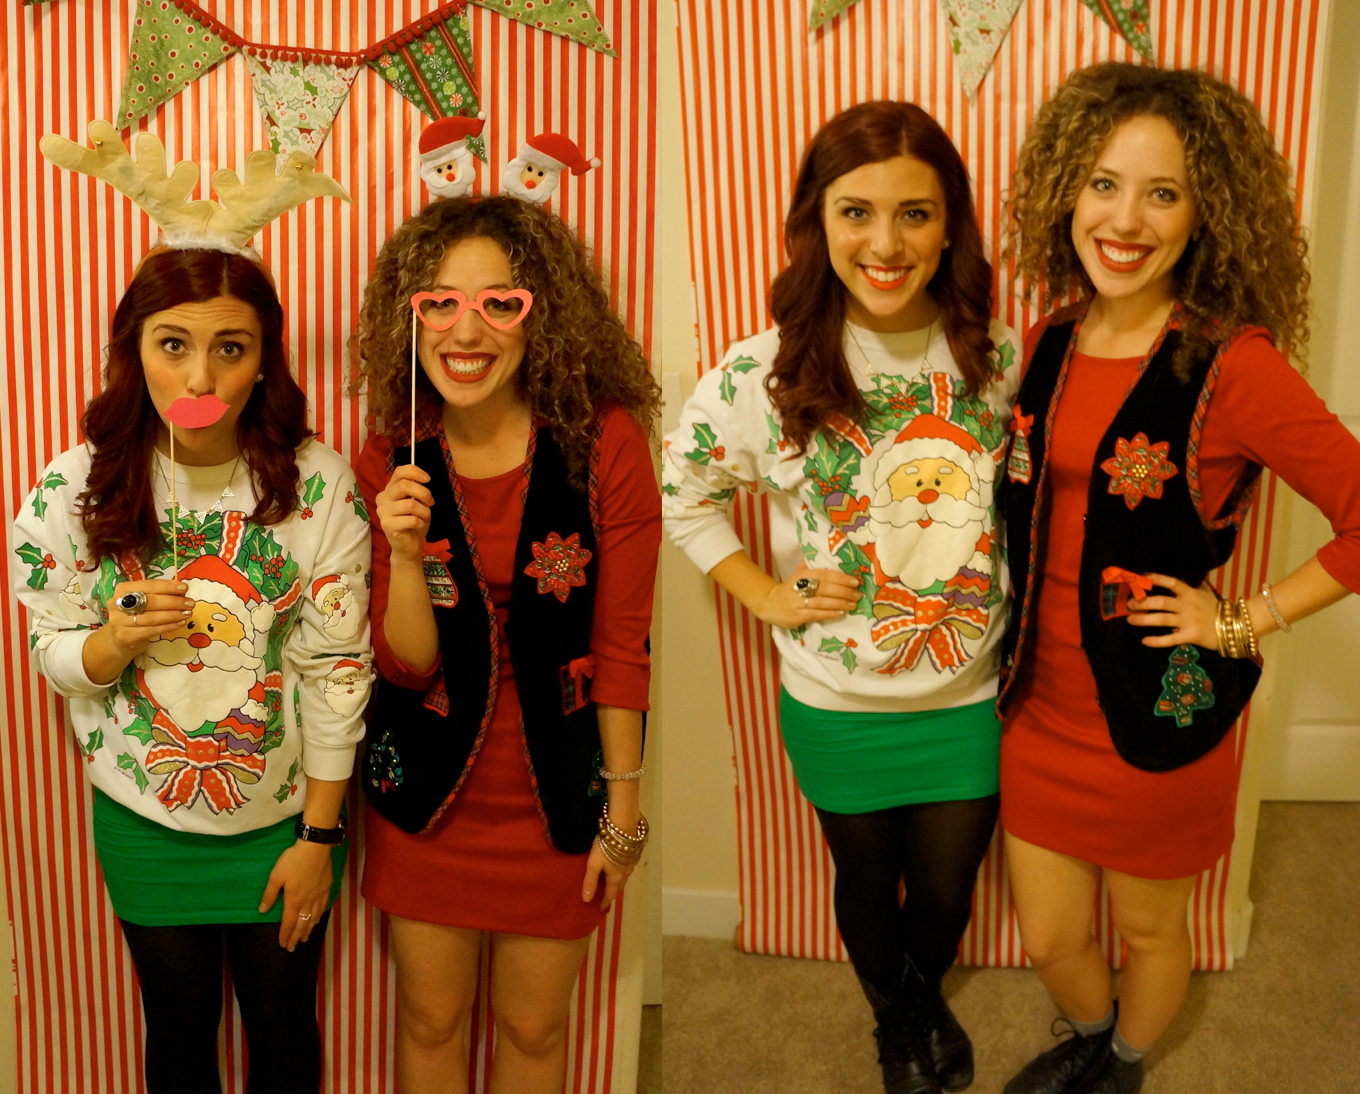 Day 7: Gourmet Gab and Simply Audree Kate's Ugly Sweater Party ...